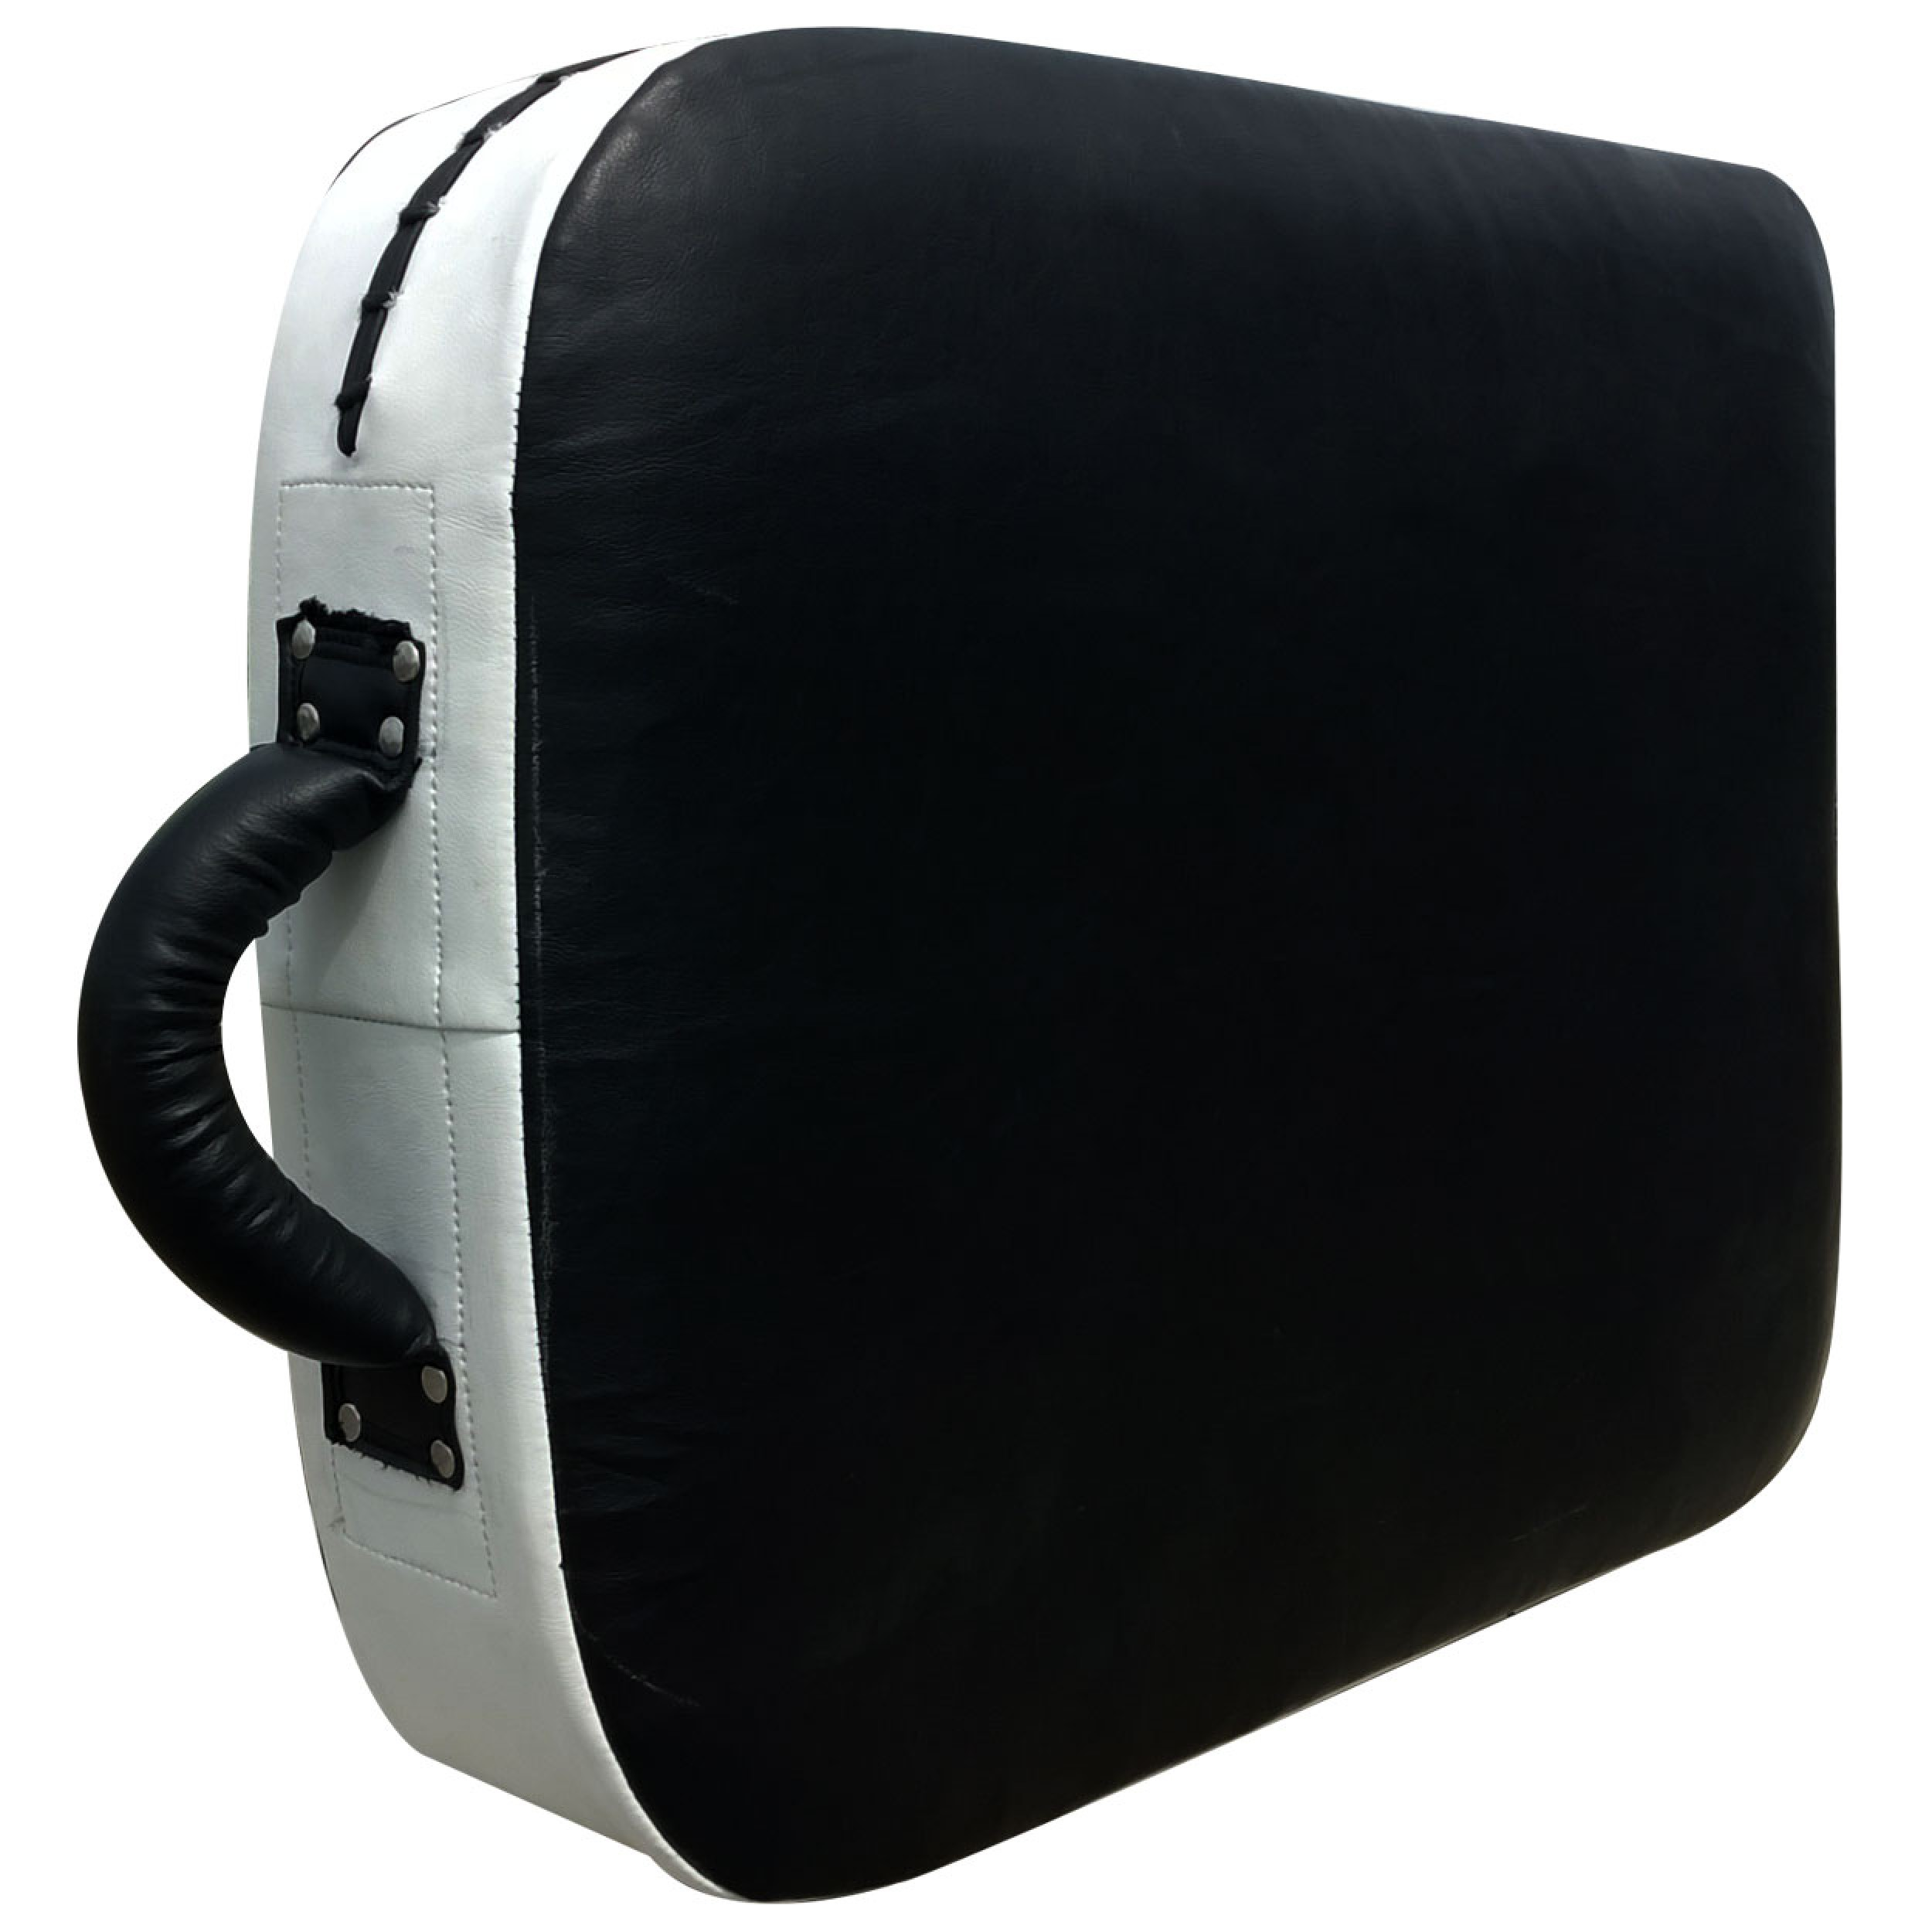 Suitcase Punch Pad